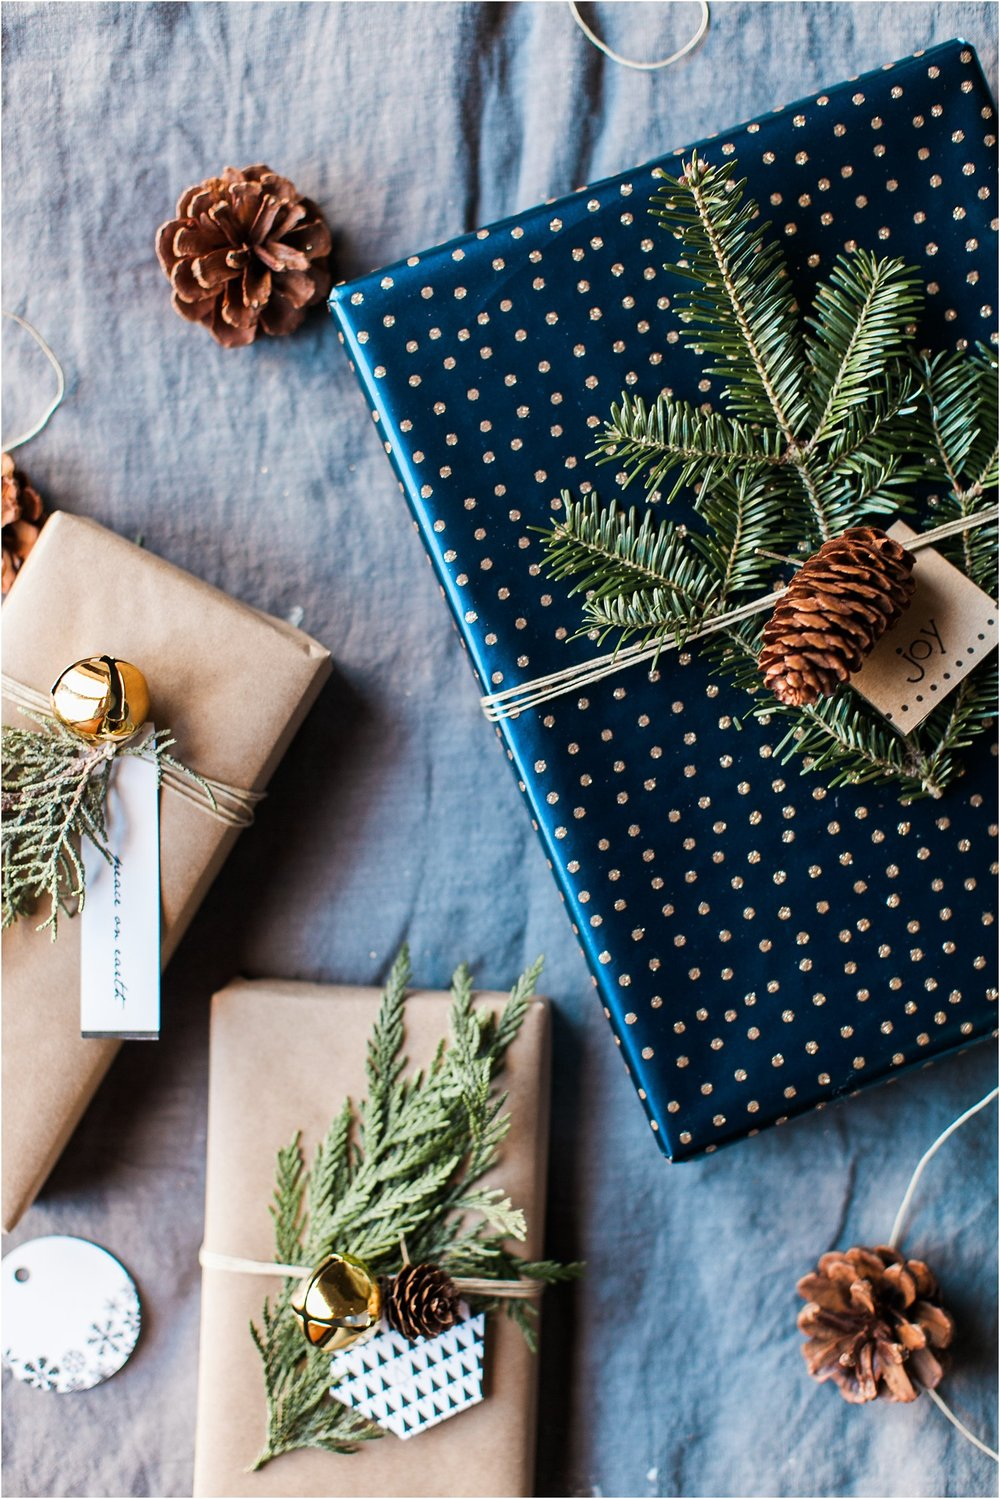 Natural Gift Wrap Inspiration with a Hint of Holiday Glam + A Free Printable | Feast & Dwell